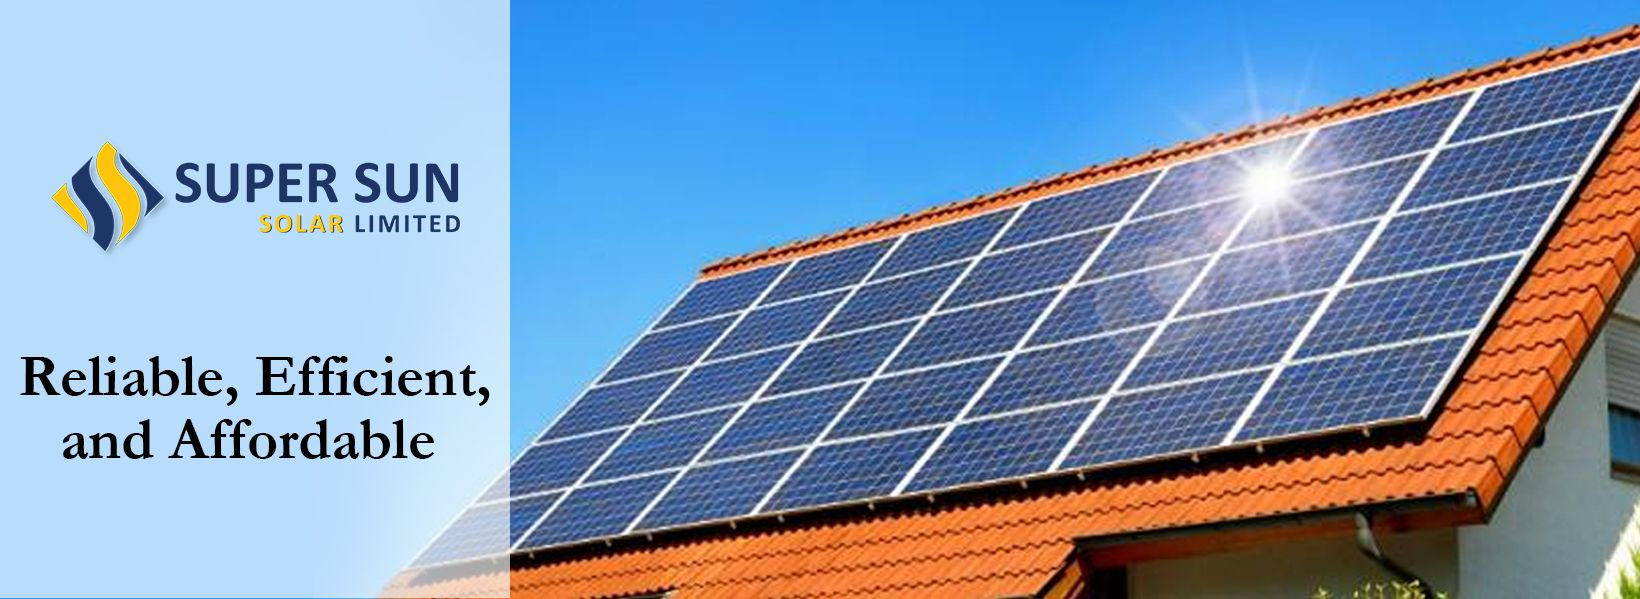 One of India's most trusted solar power solutions company